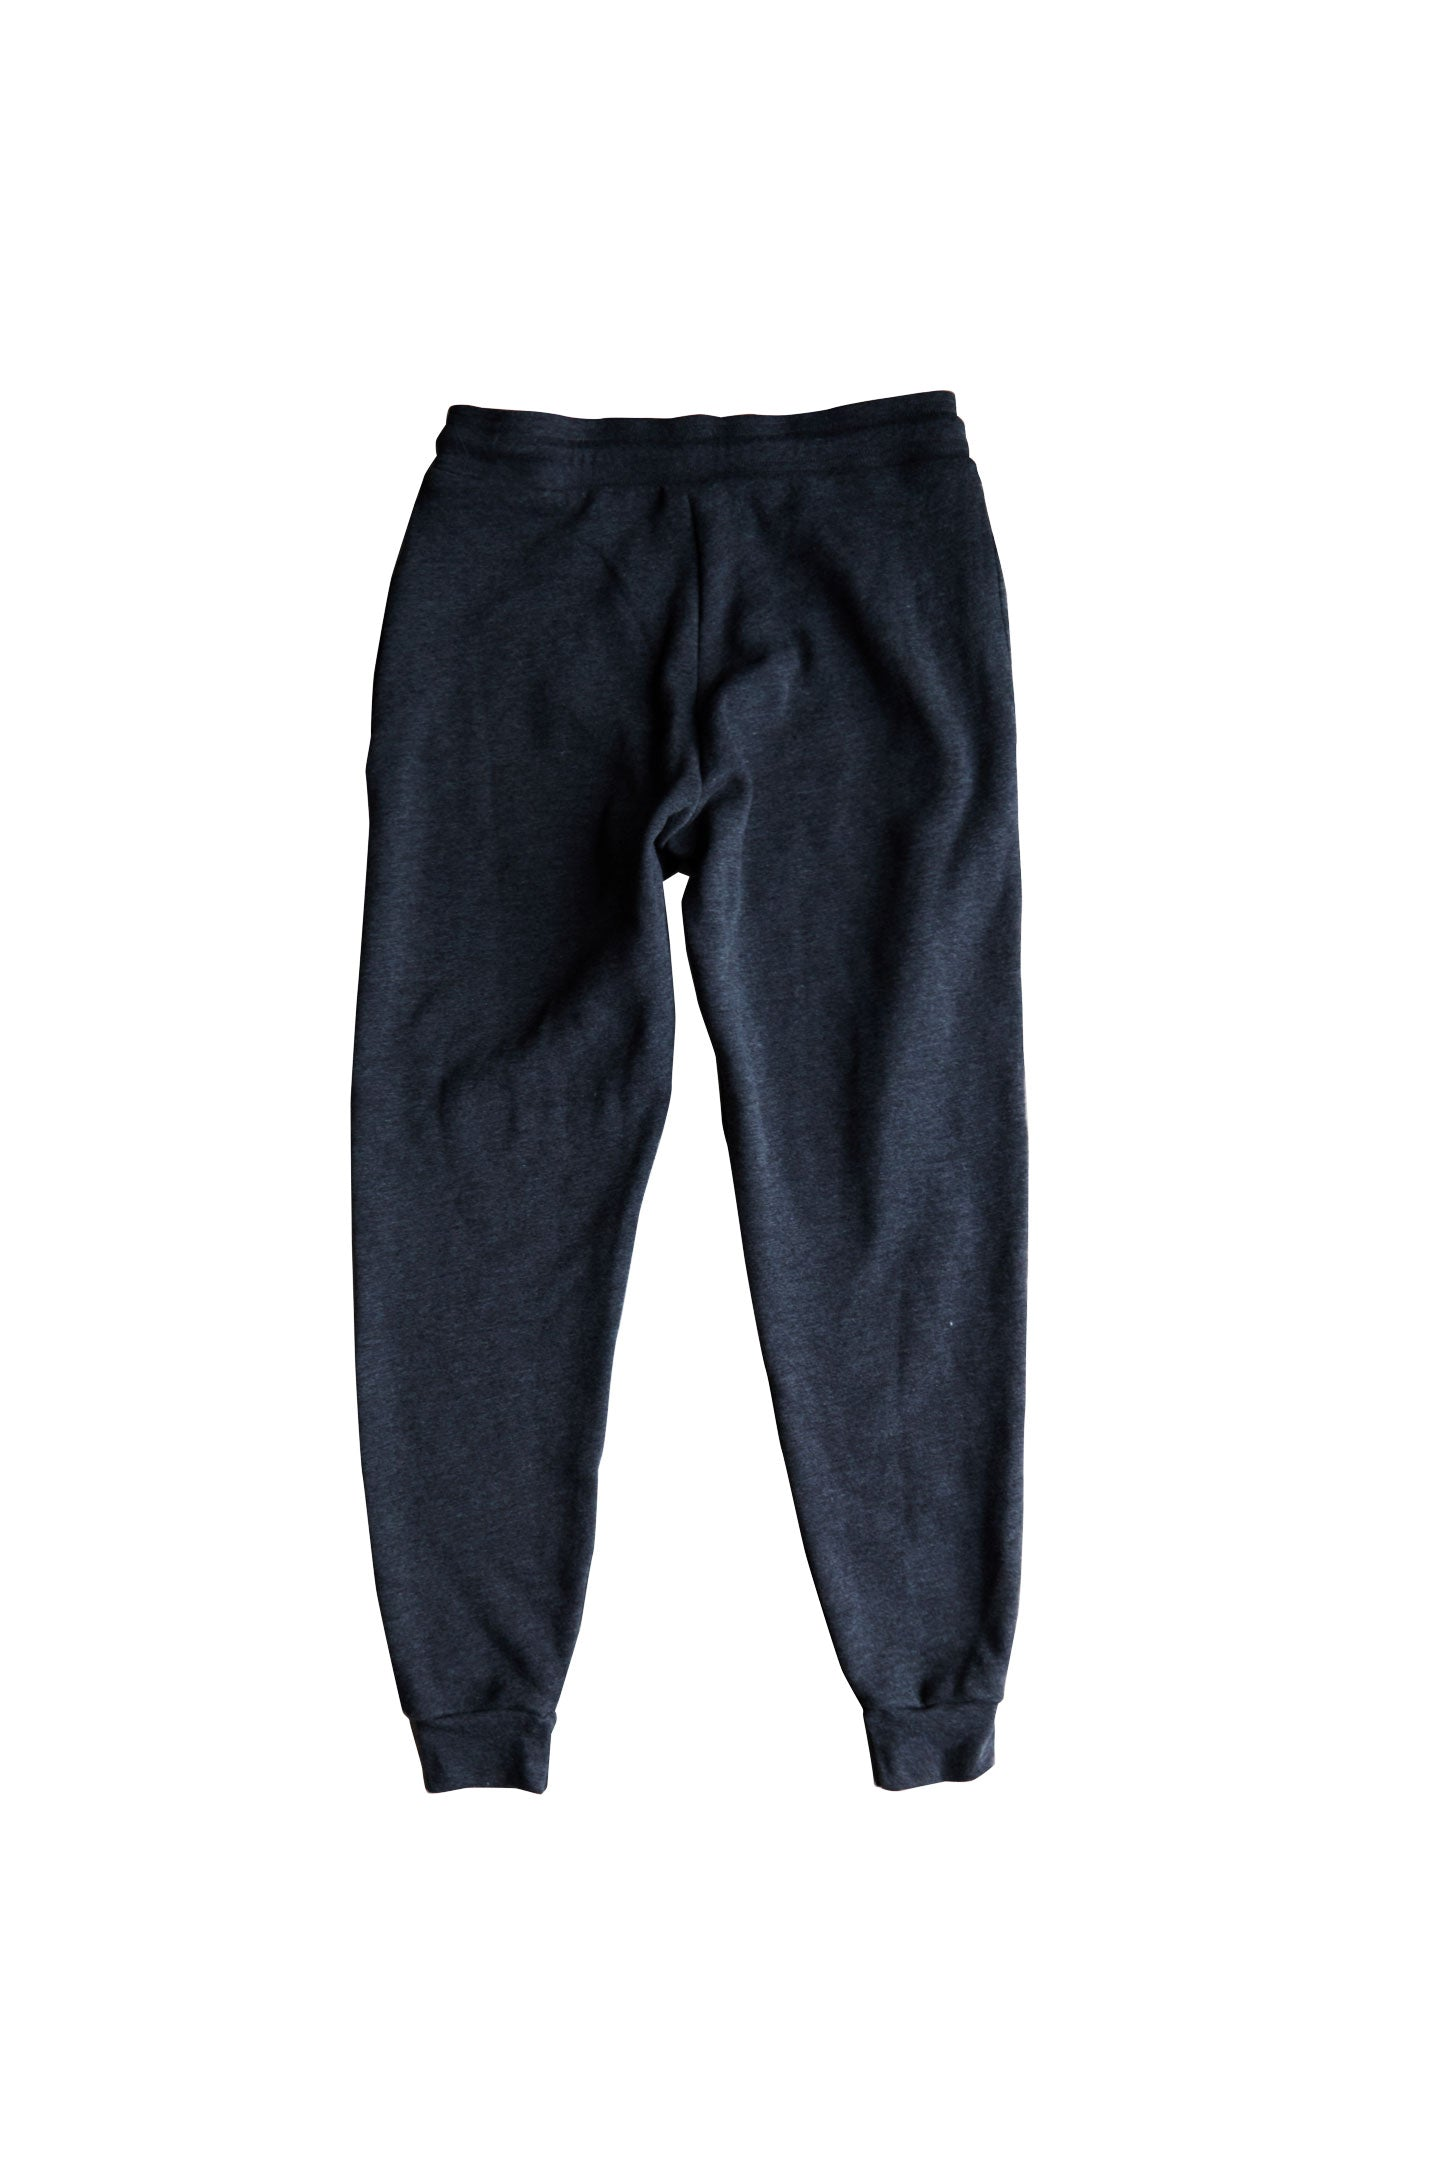 CLASSIC FLEECE JOGGERS - DARK GREY